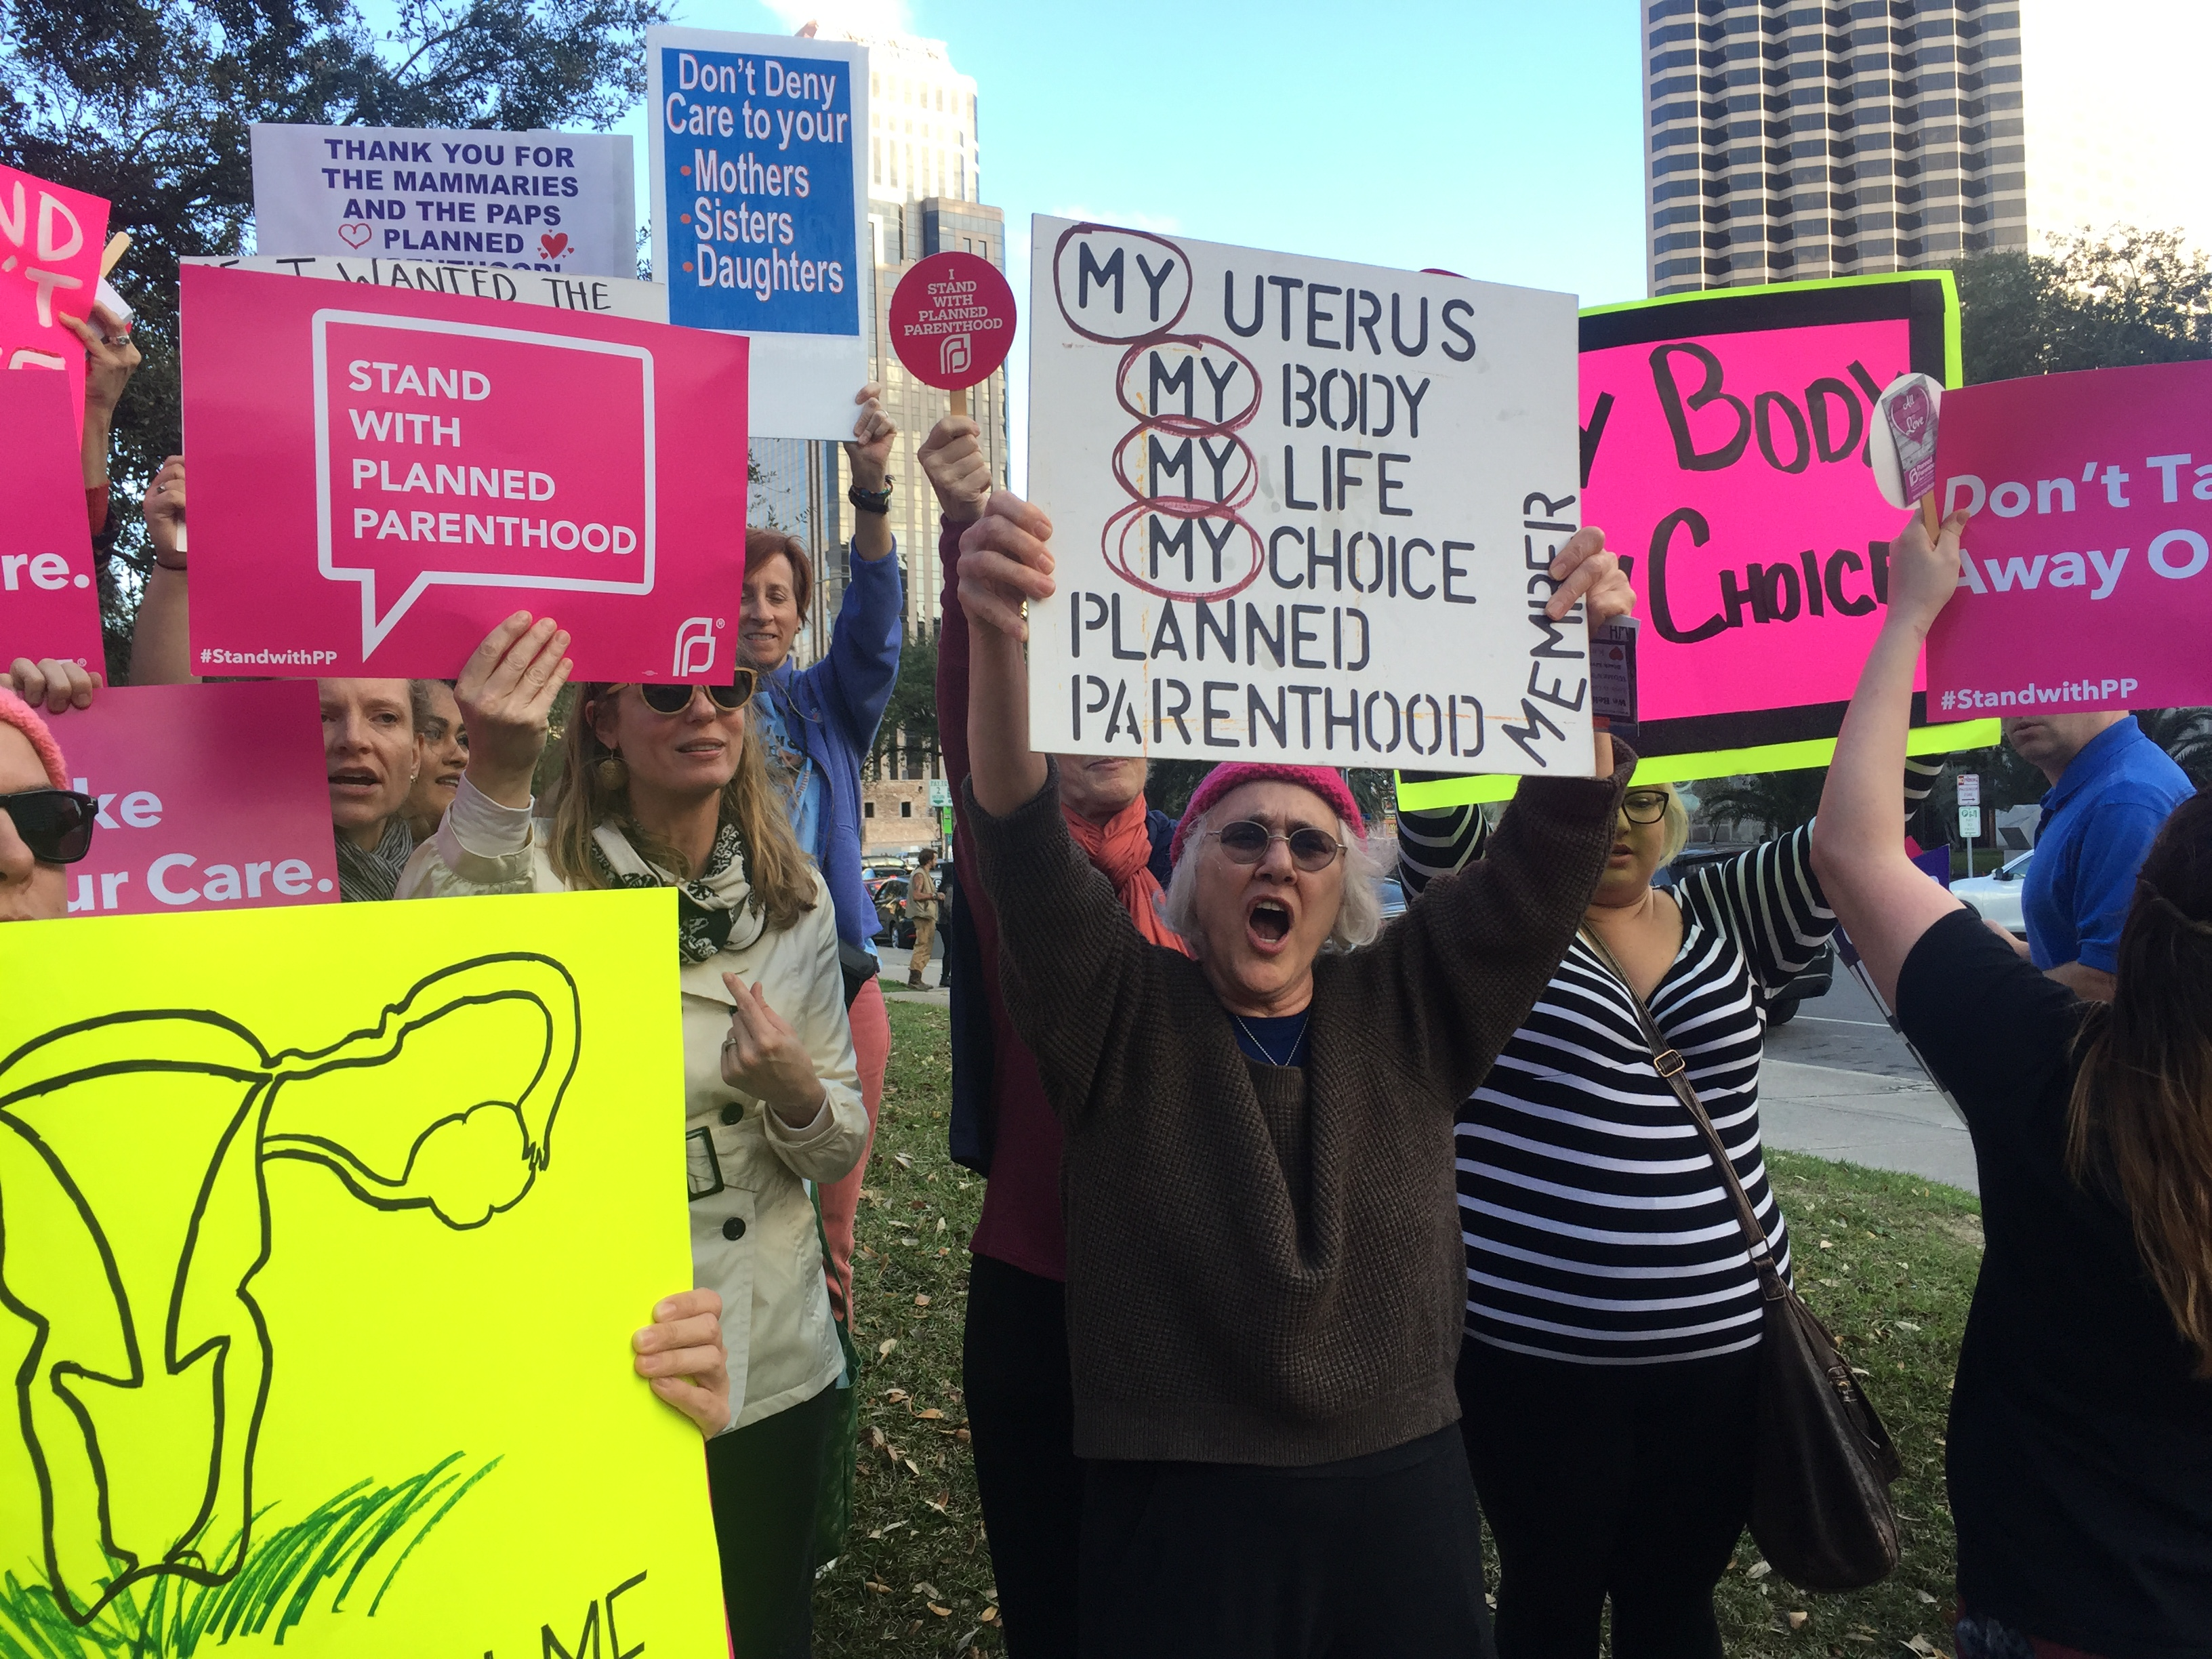 Planned Parenthood supporters chant for pro-choice rights. Nearly 200 people gathered in front of City Hall to defend the organization in response to President Trump's order to defund it. Feb. 10, 2017. Photo credit: Haley Pegg